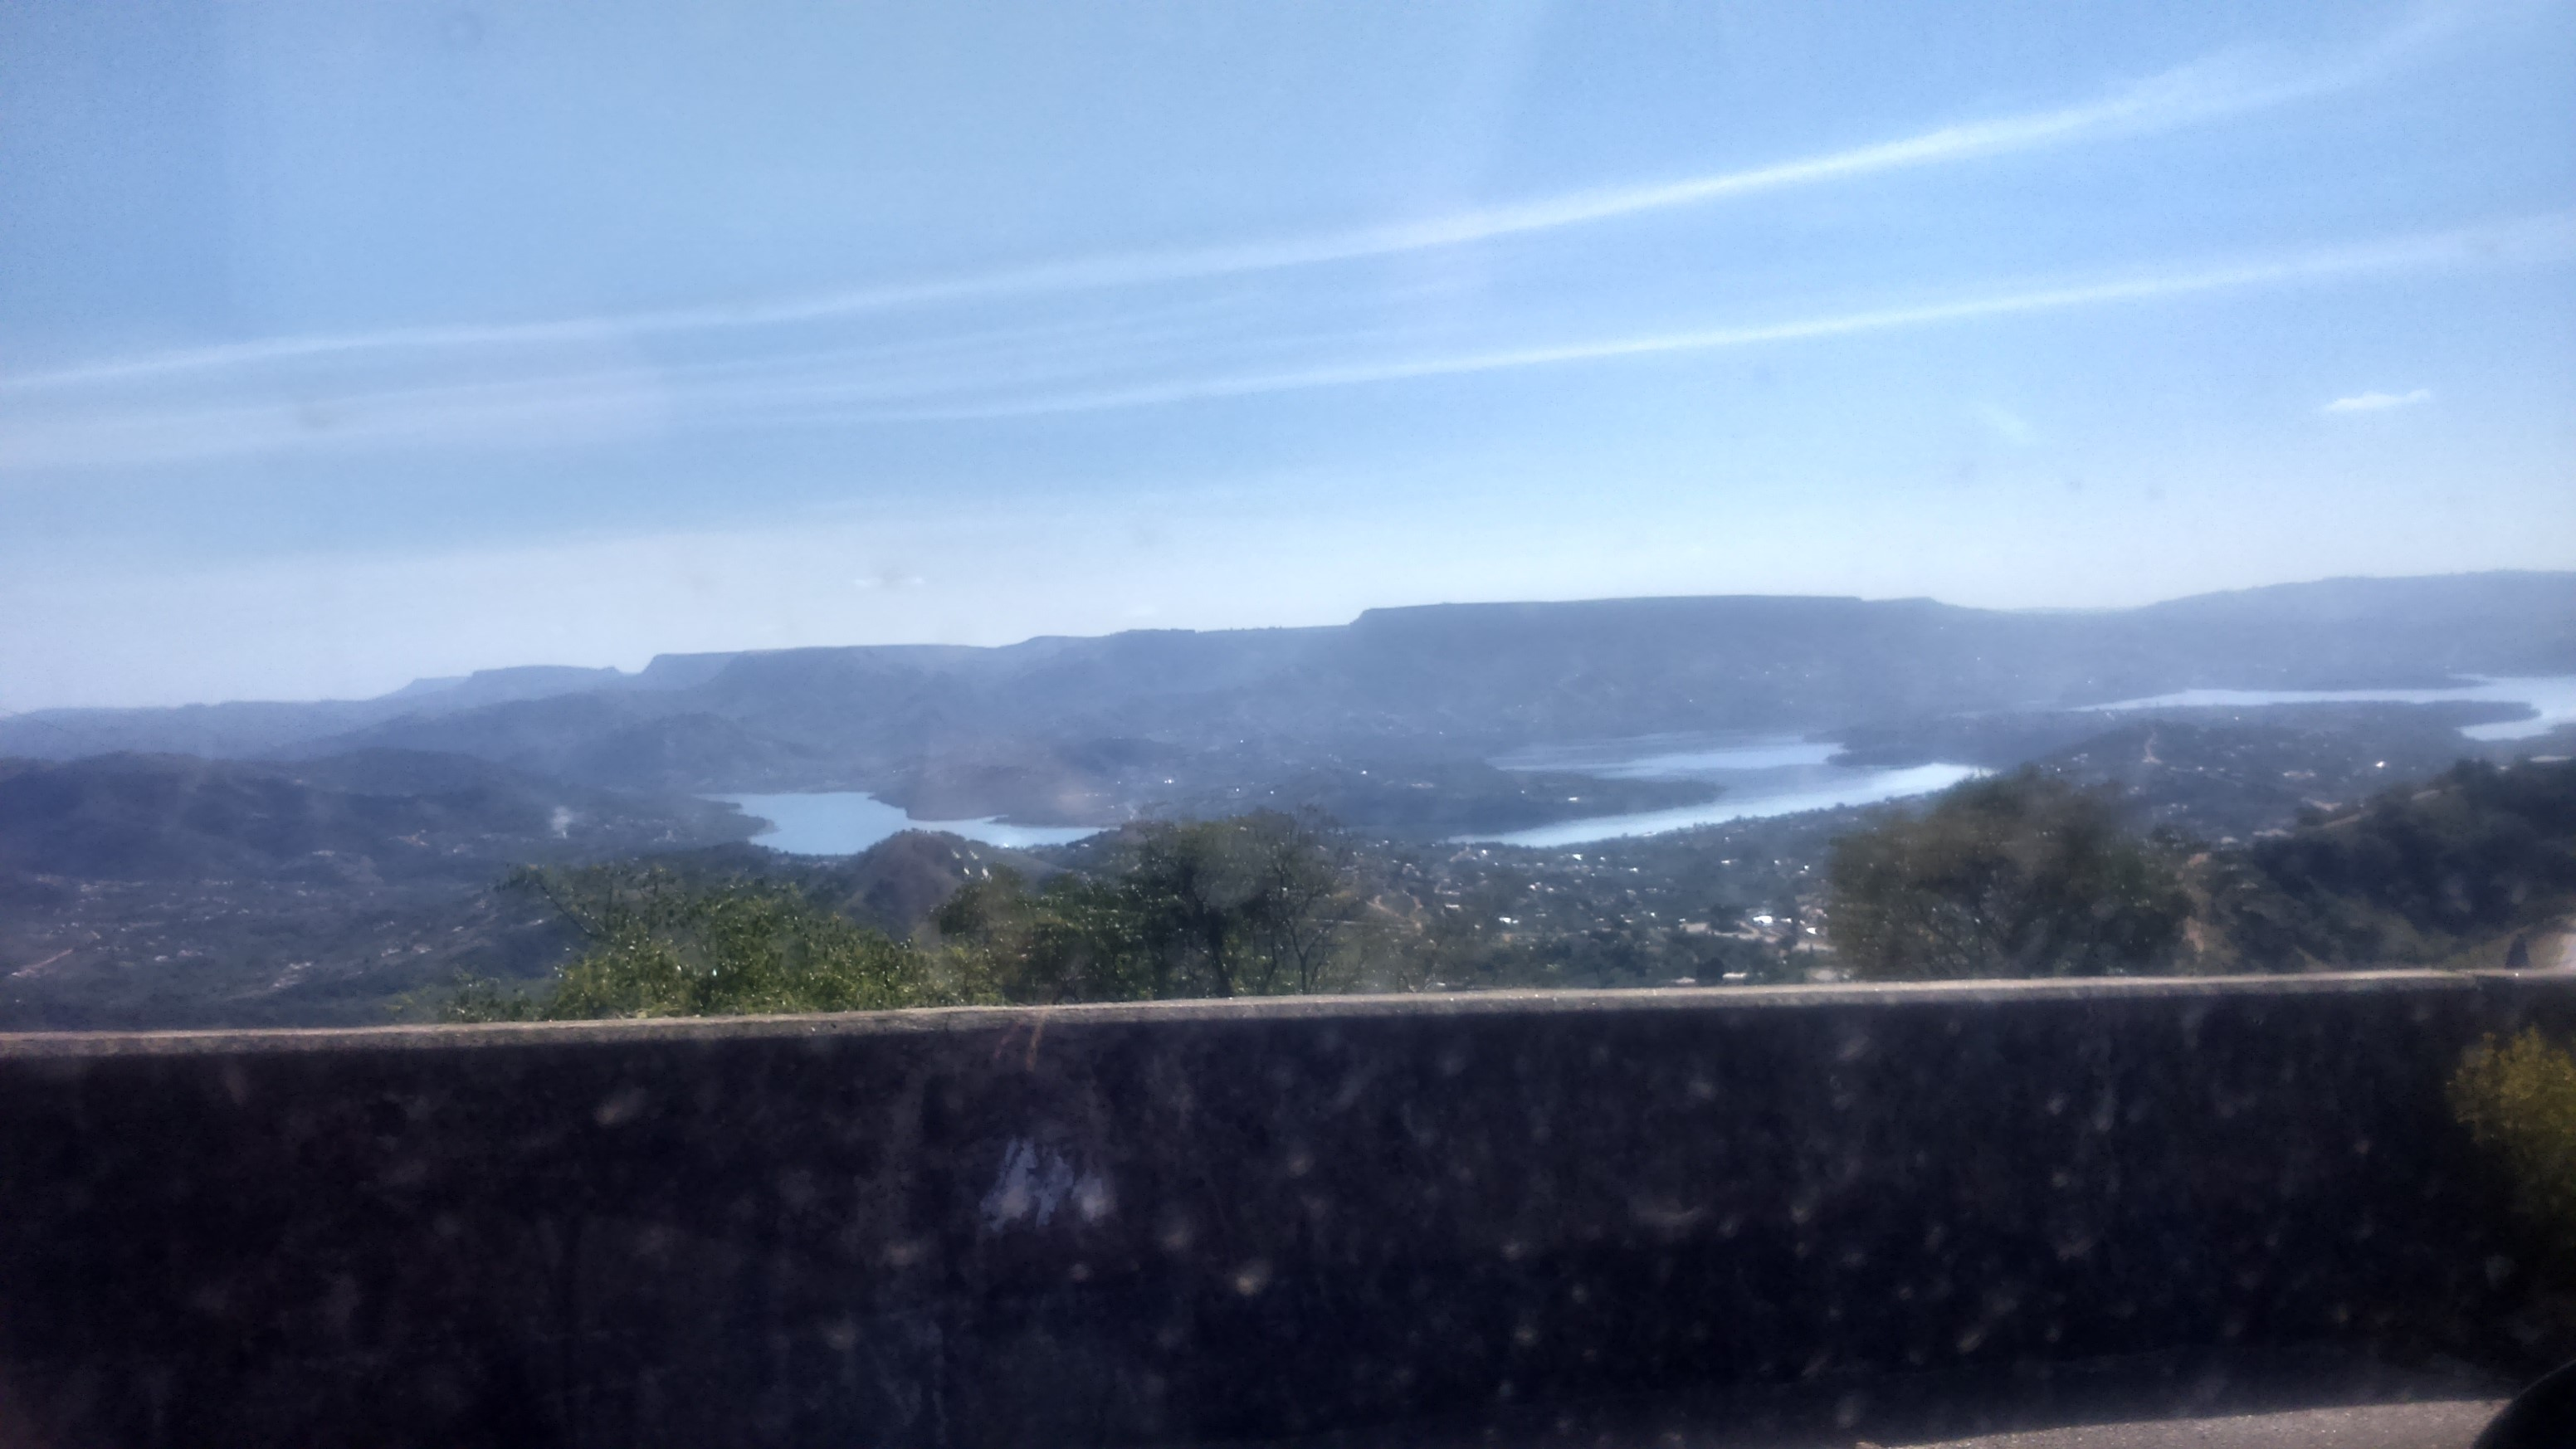 the view over Inanda Dam in Kwa-Zulu Natal - magnificent